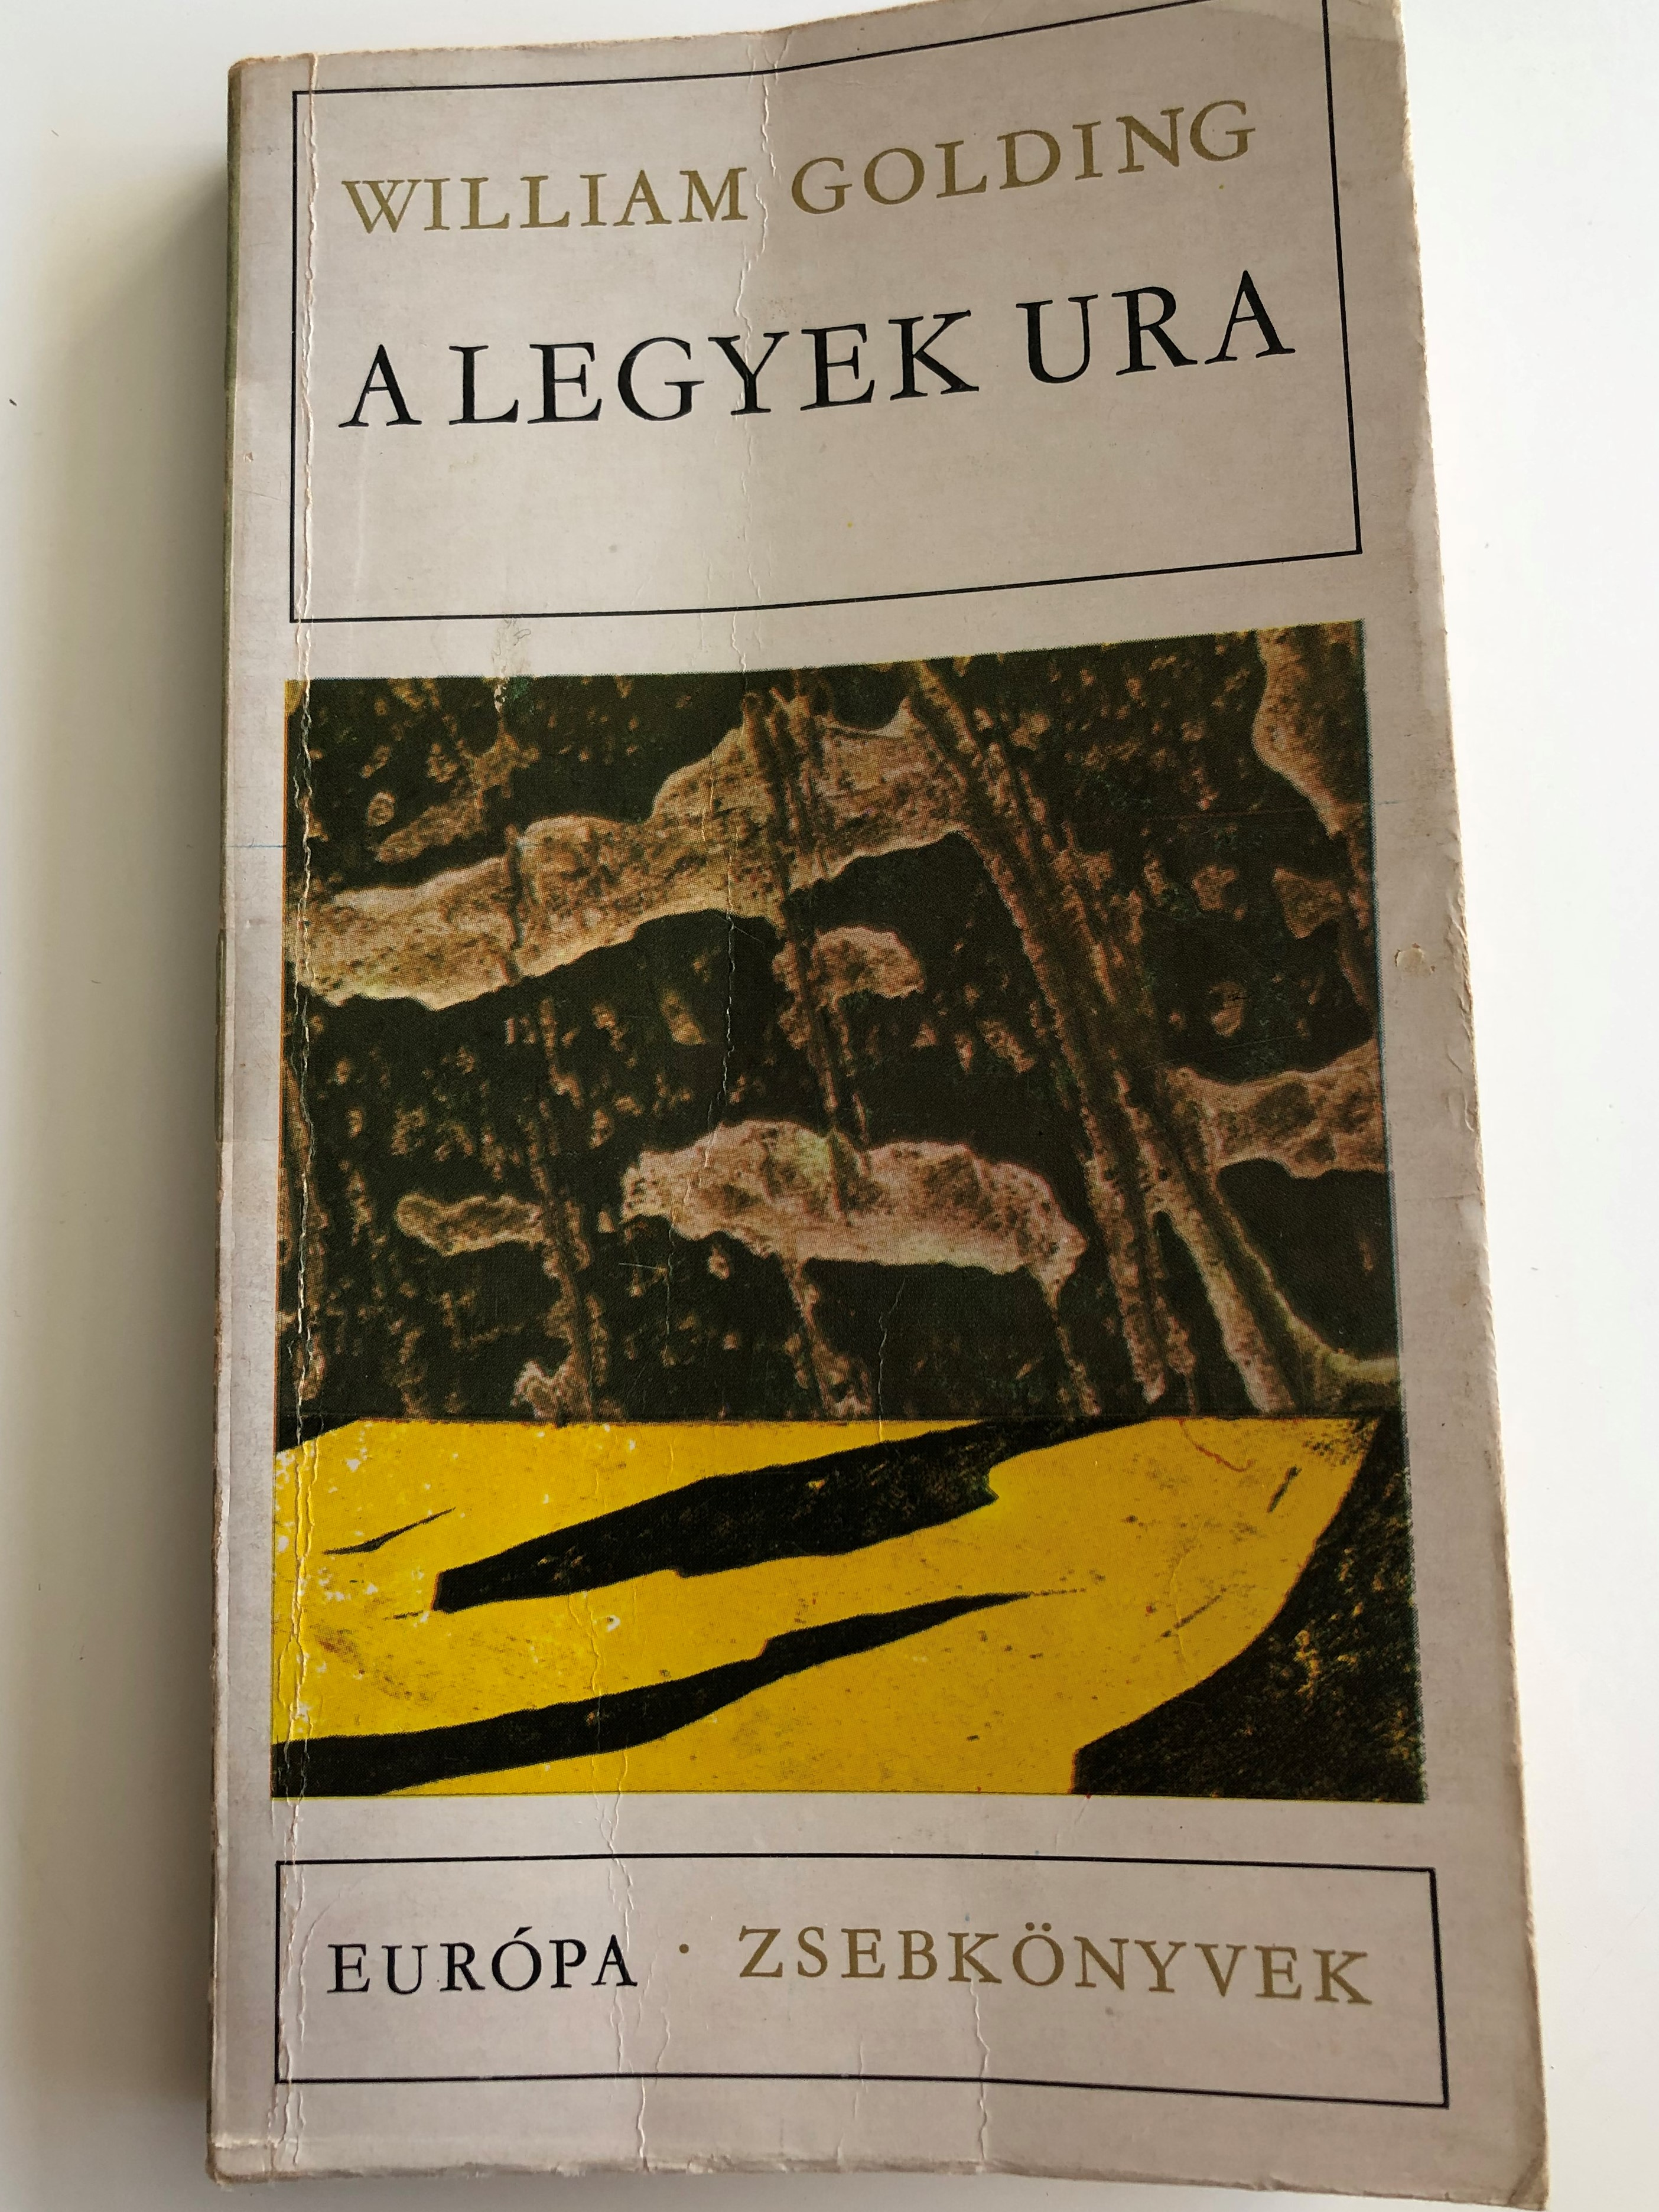 a-legyek-ura-by-william-golding-hungarian-edition-of-lord-of-the-files-1.jpg